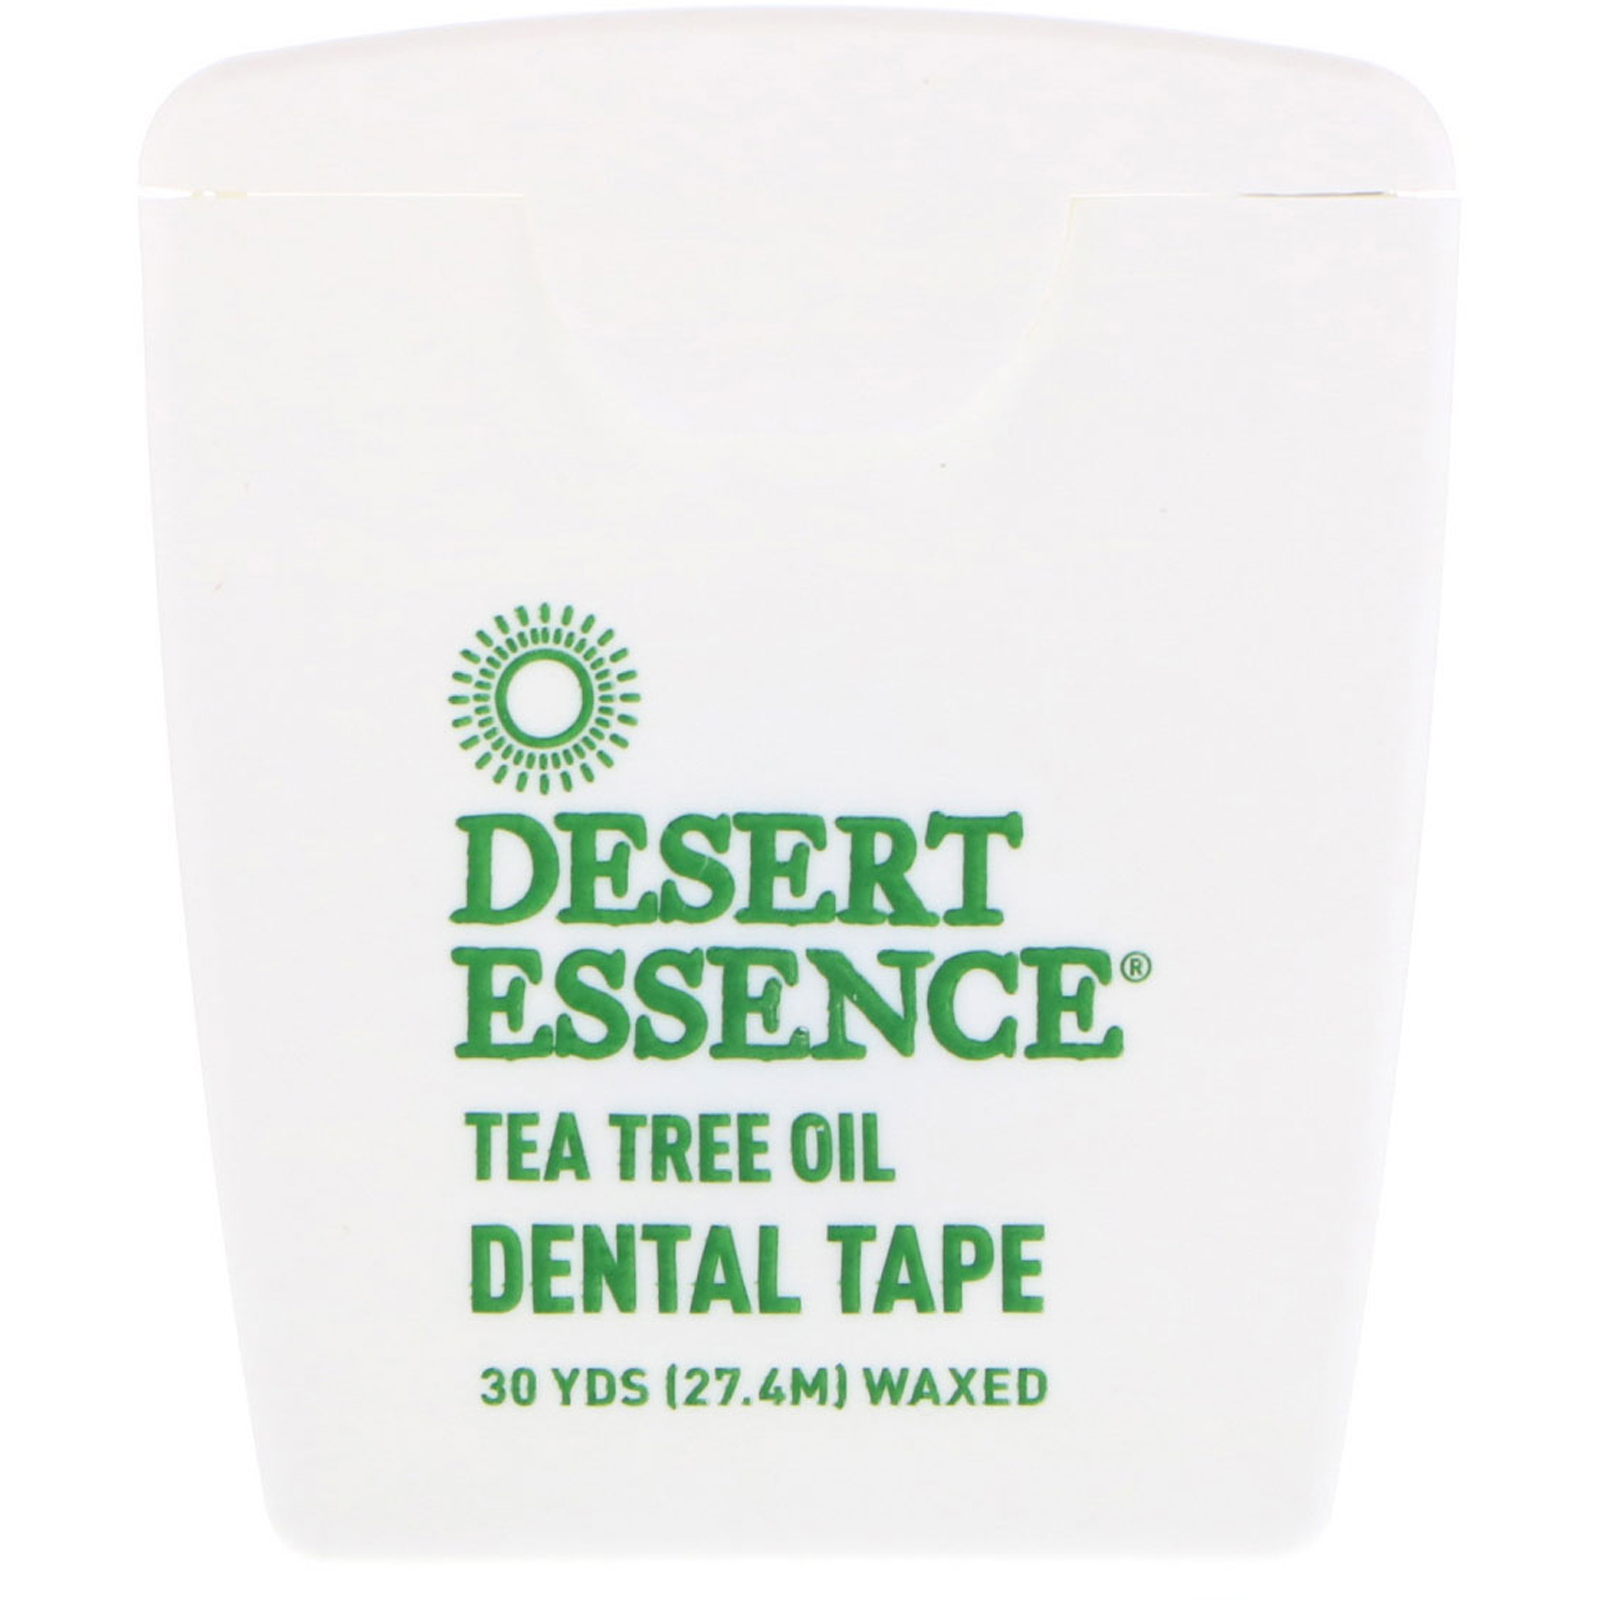 Desert Essence Tea Tree Oil Dental Tape Waxed 30 Yds 27 4 M